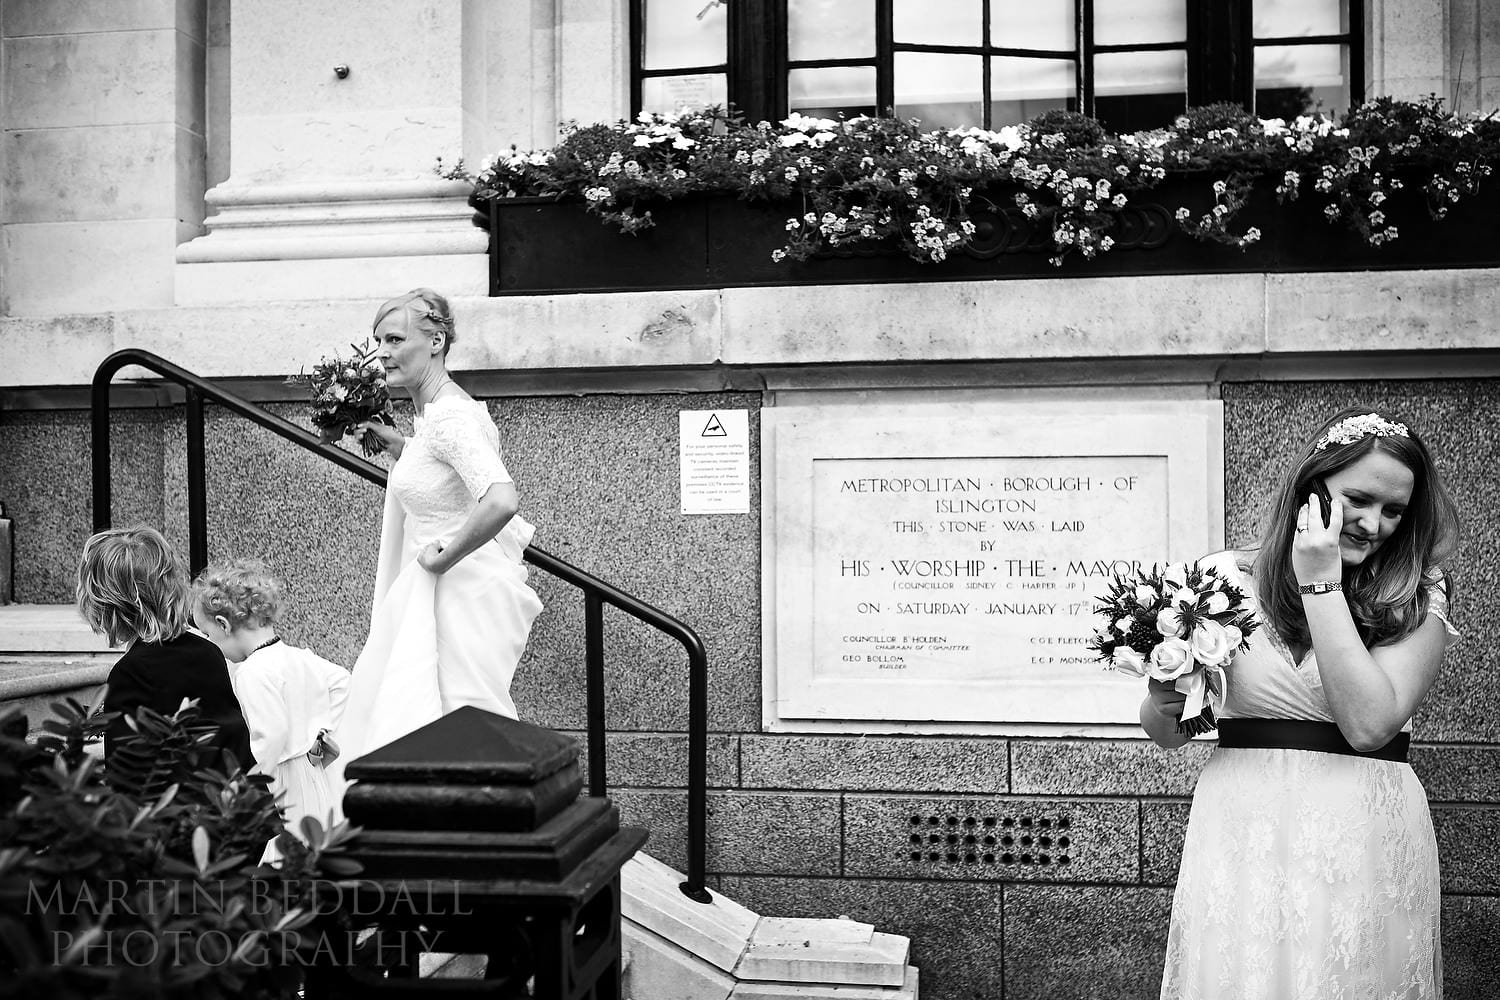 Next bride heads into Islington Town Hall